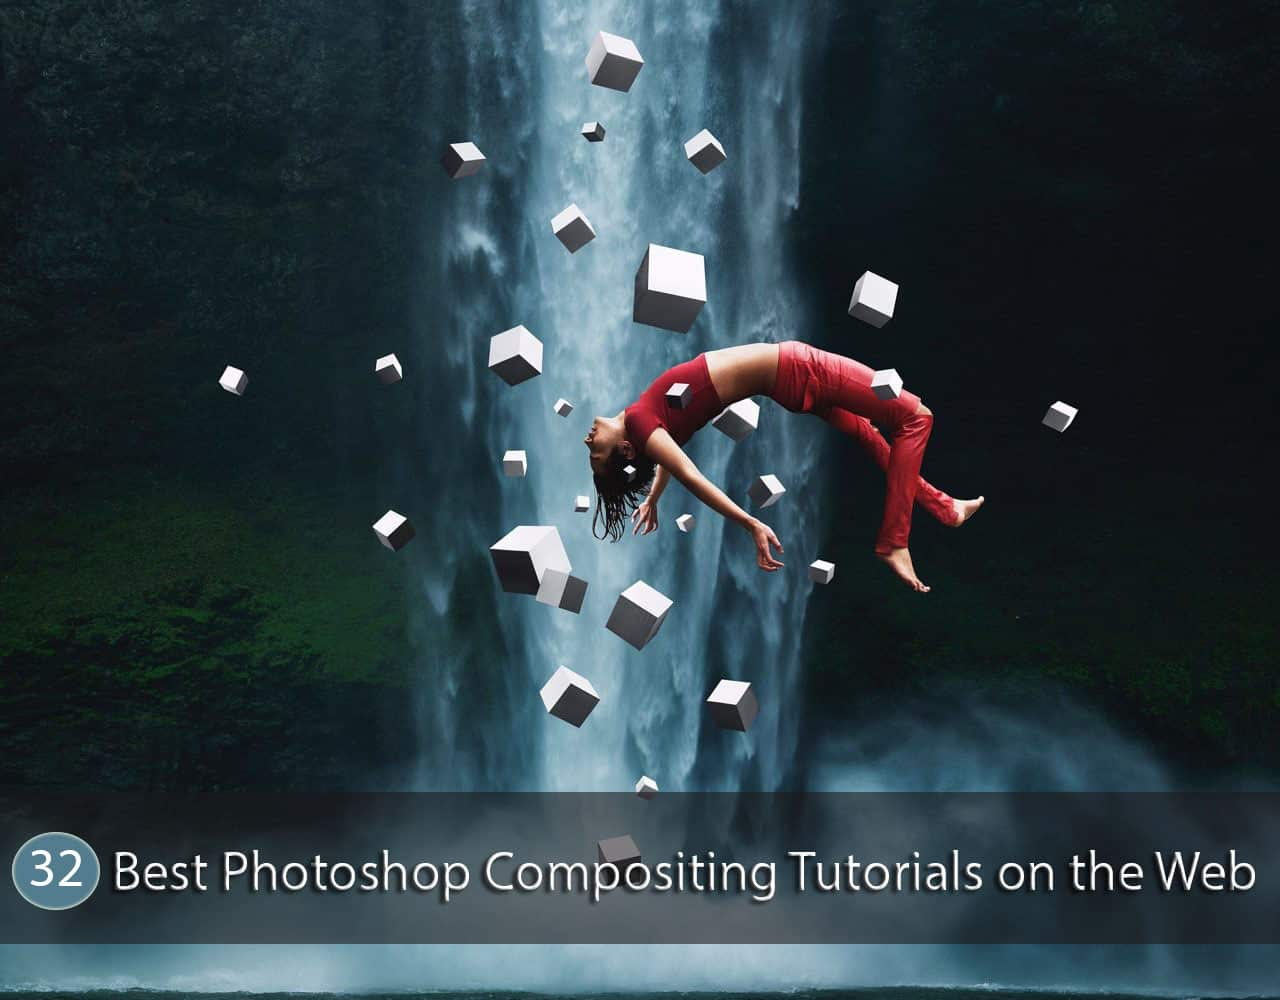 32 best photoshop compositing tutorials on the webg baditri Gallery